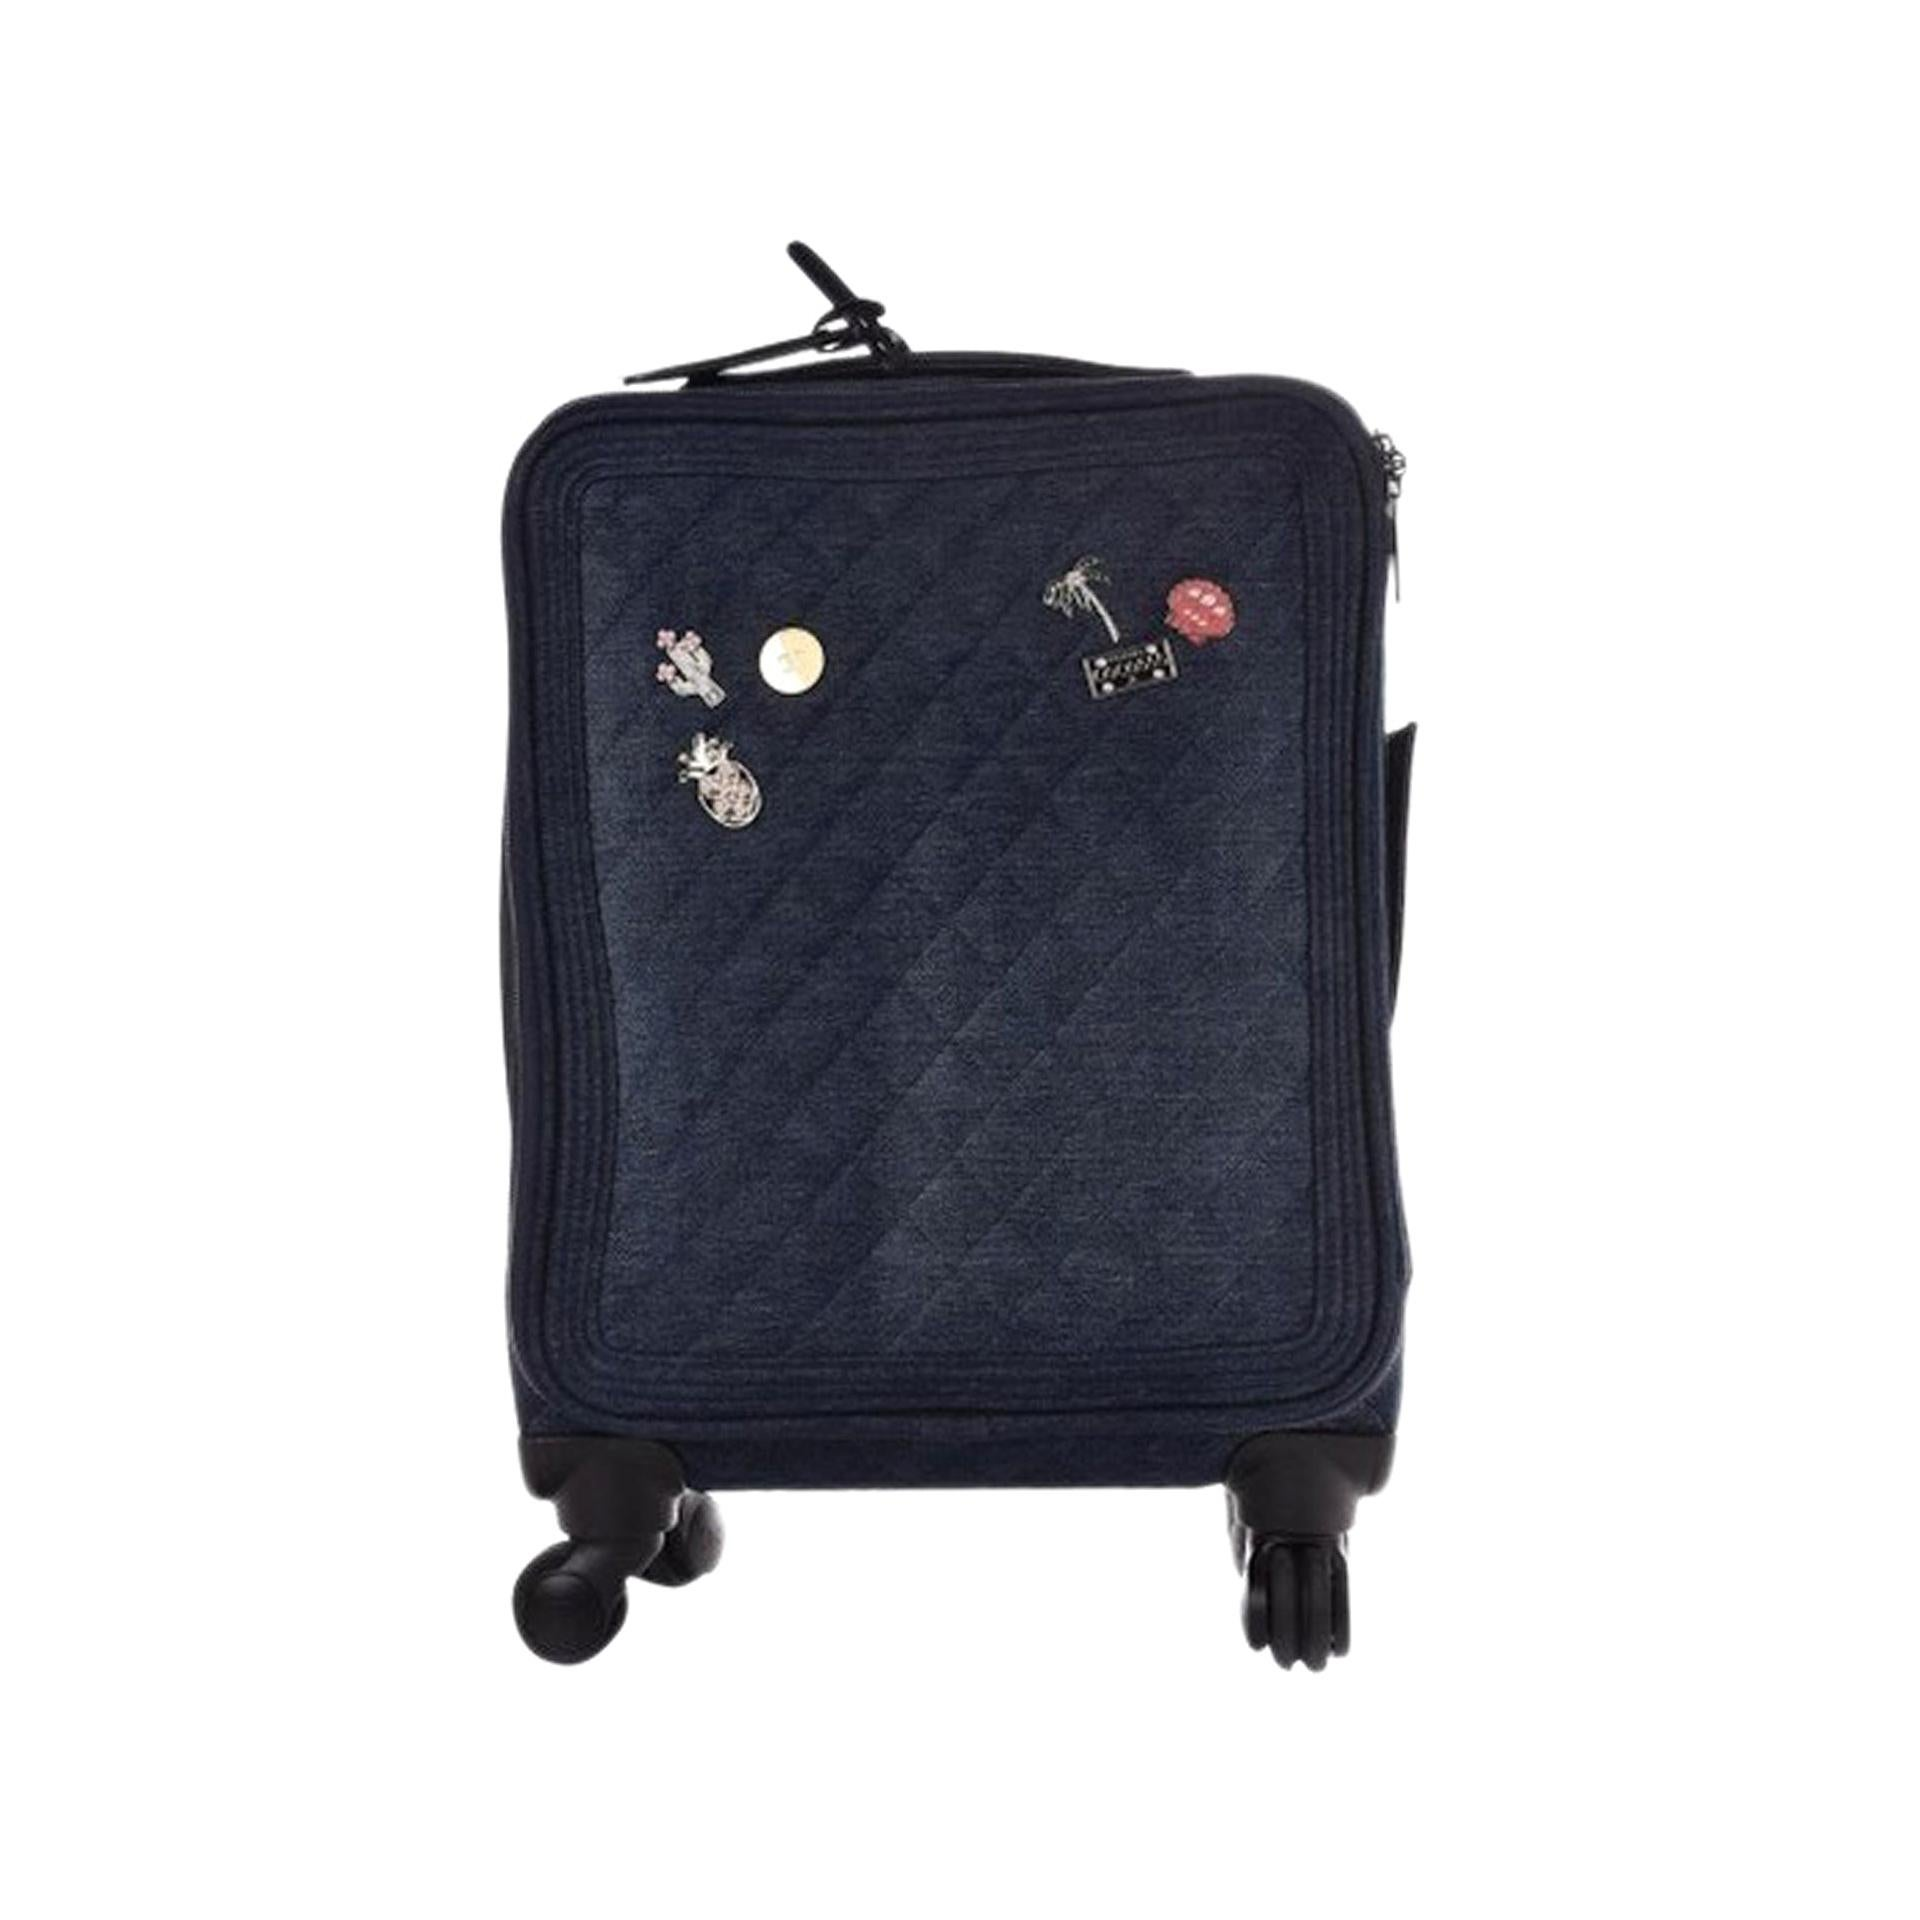 Chanel Coco Cuba Trolley Travel Luggage Rolling Carry On